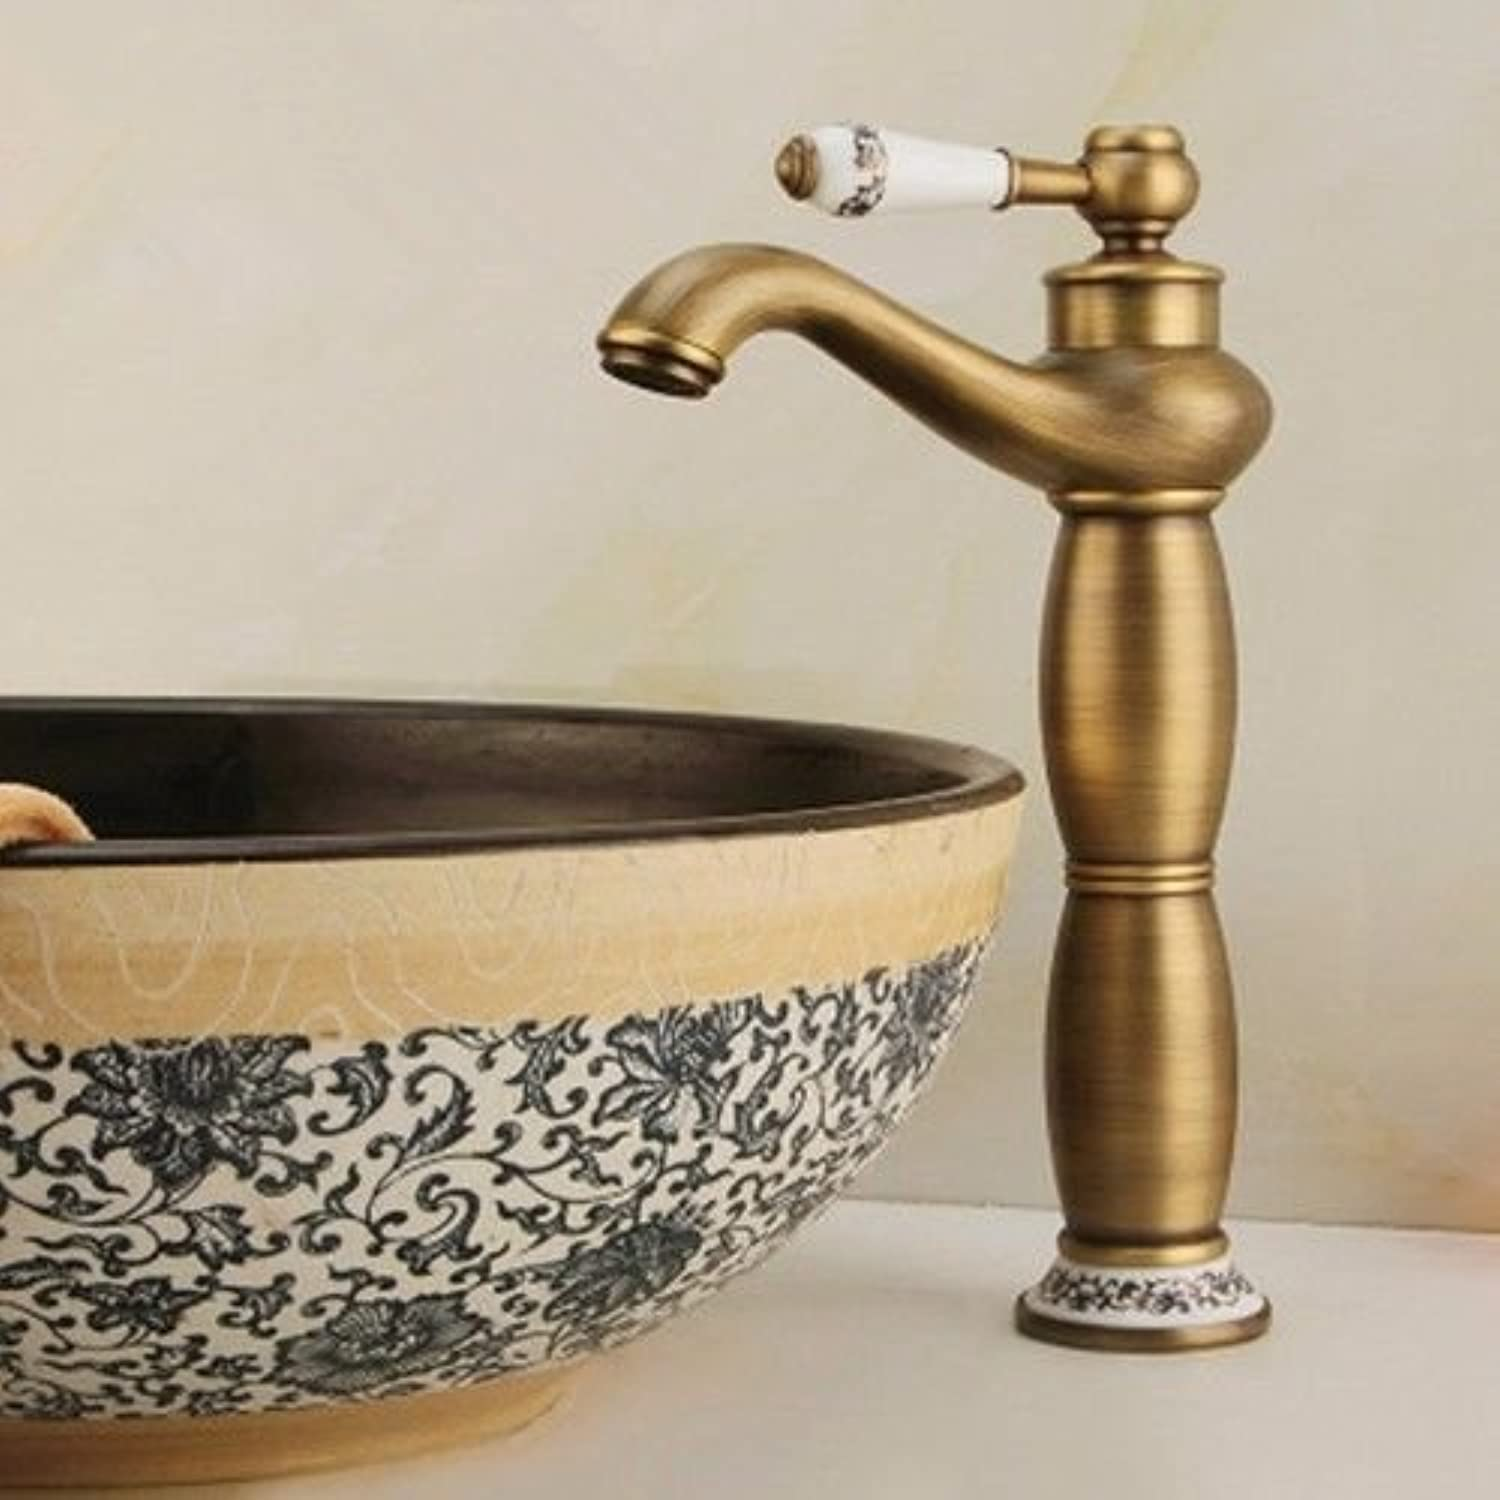 NewBorn Faucet Water Taps Hot And Cold Water The Copper Hot And Cold bluee Enamel Antique Waterfall Basin Bathroom Water Tap Kitchen Hotel